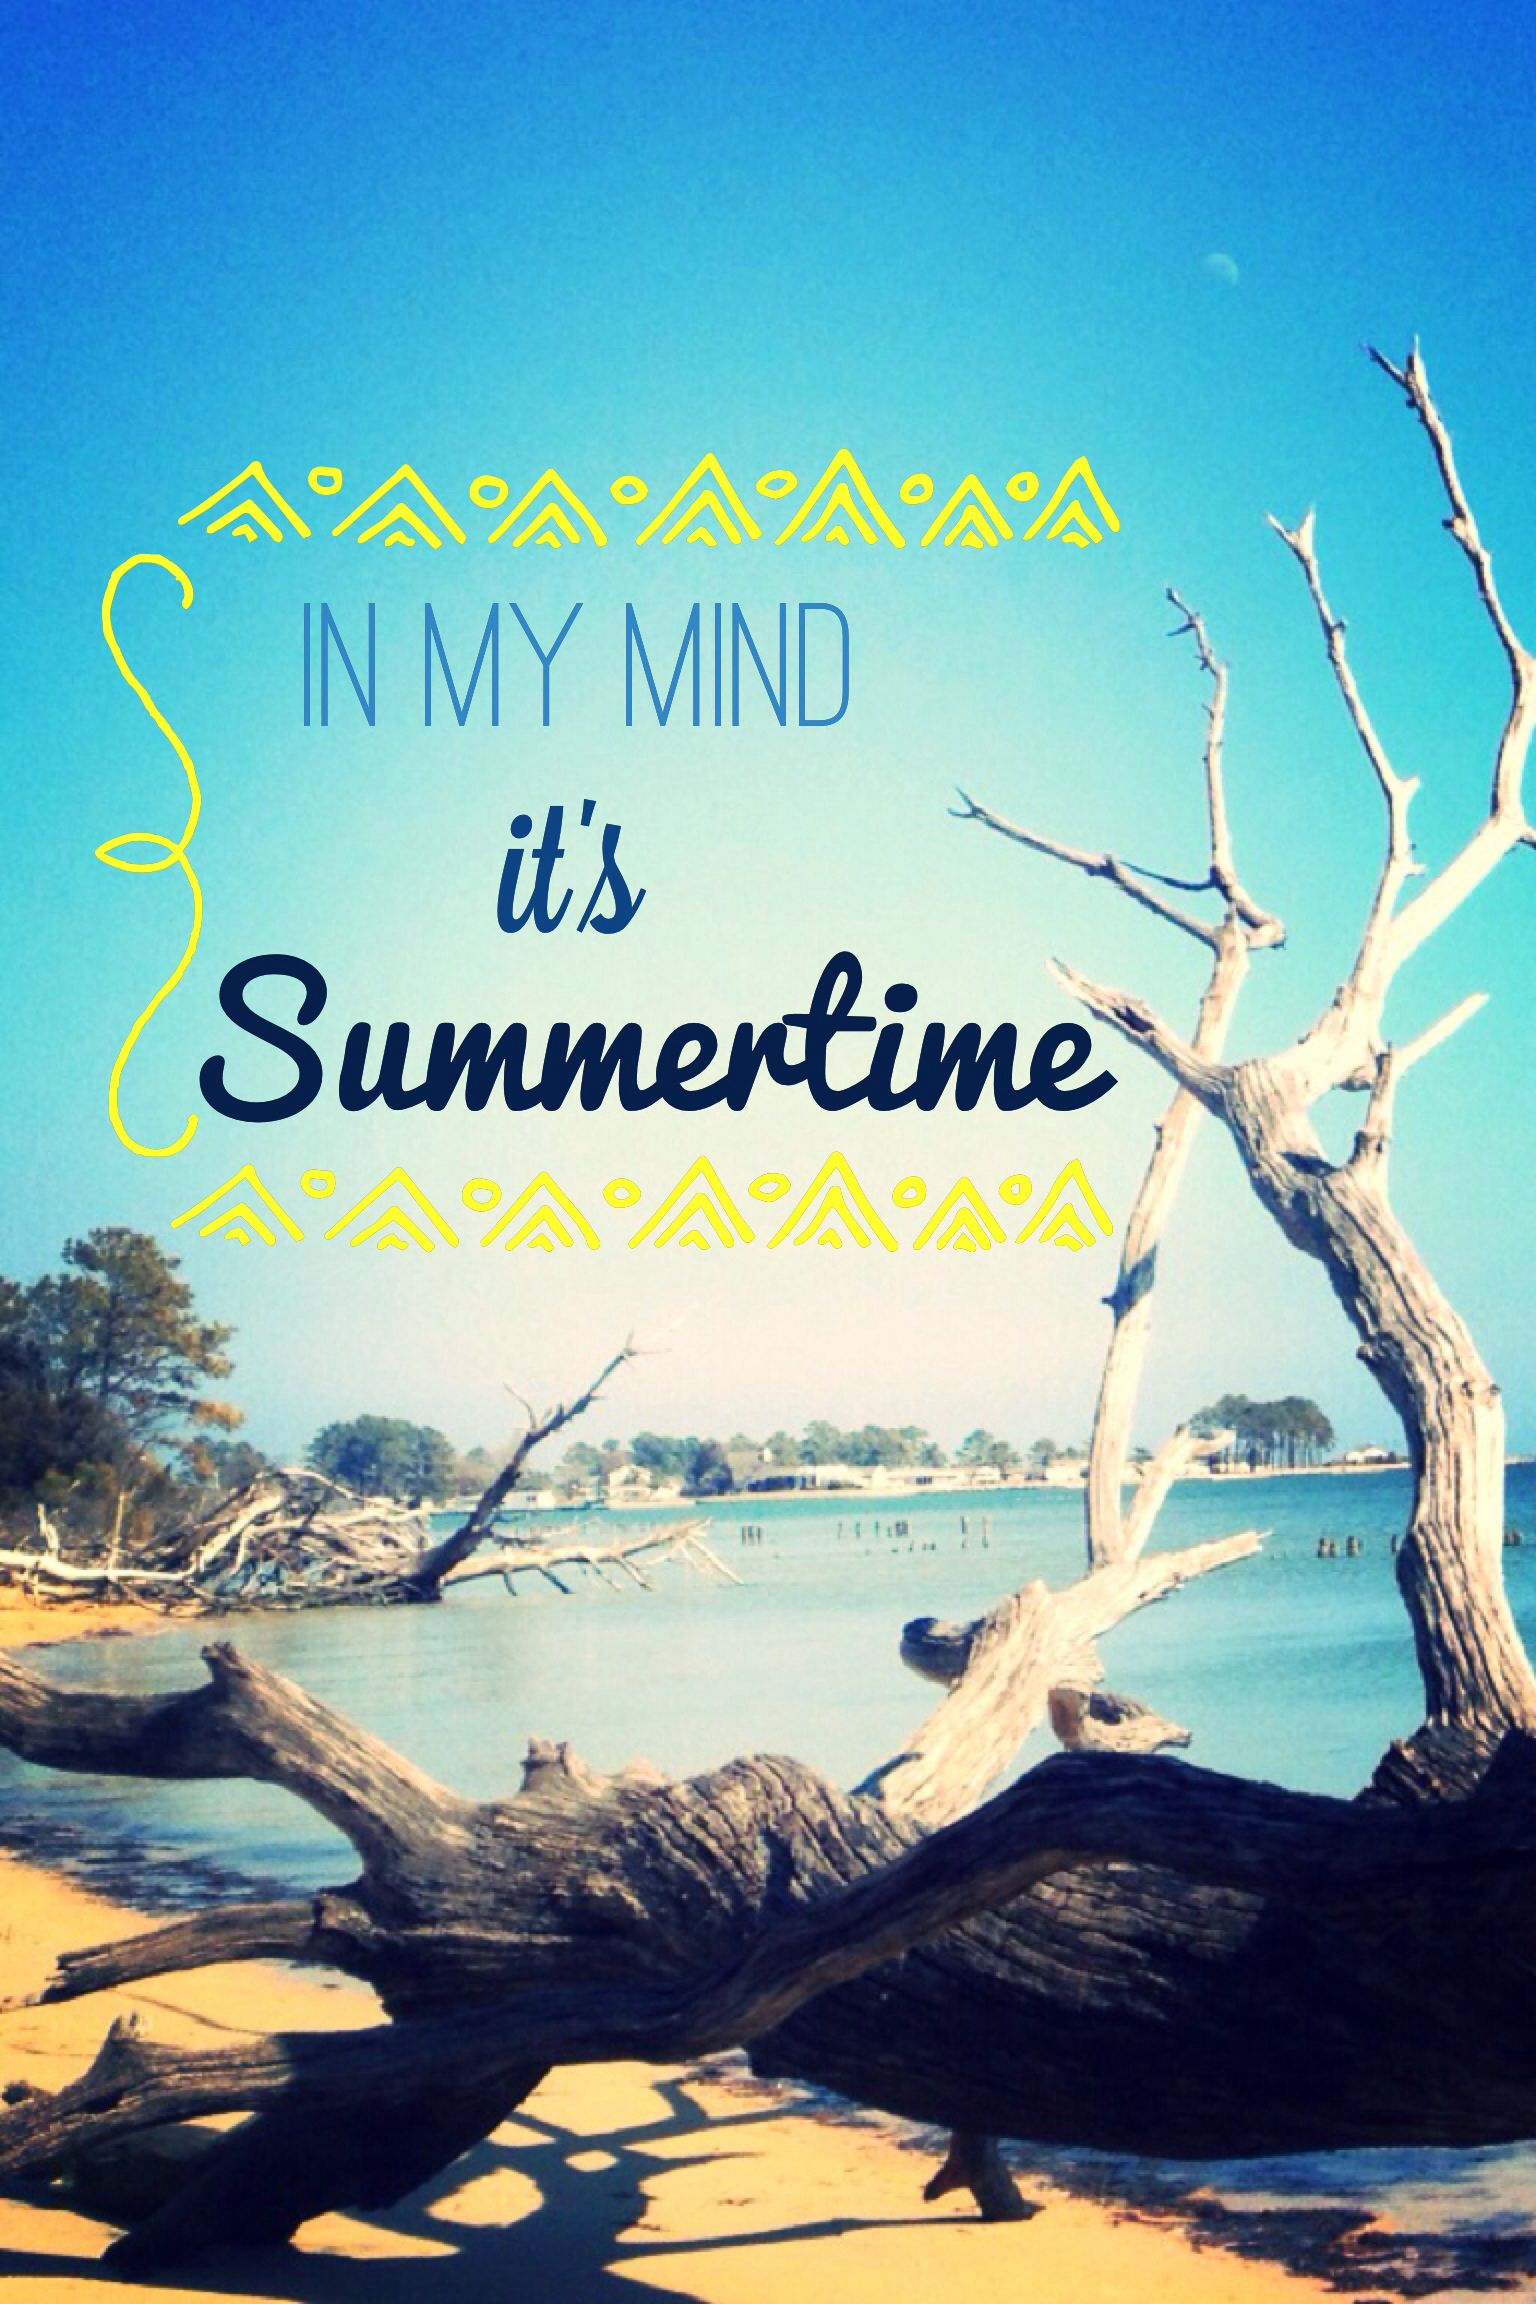 Summertime iphone wallpaper Summer time Background pictures 1536x2304